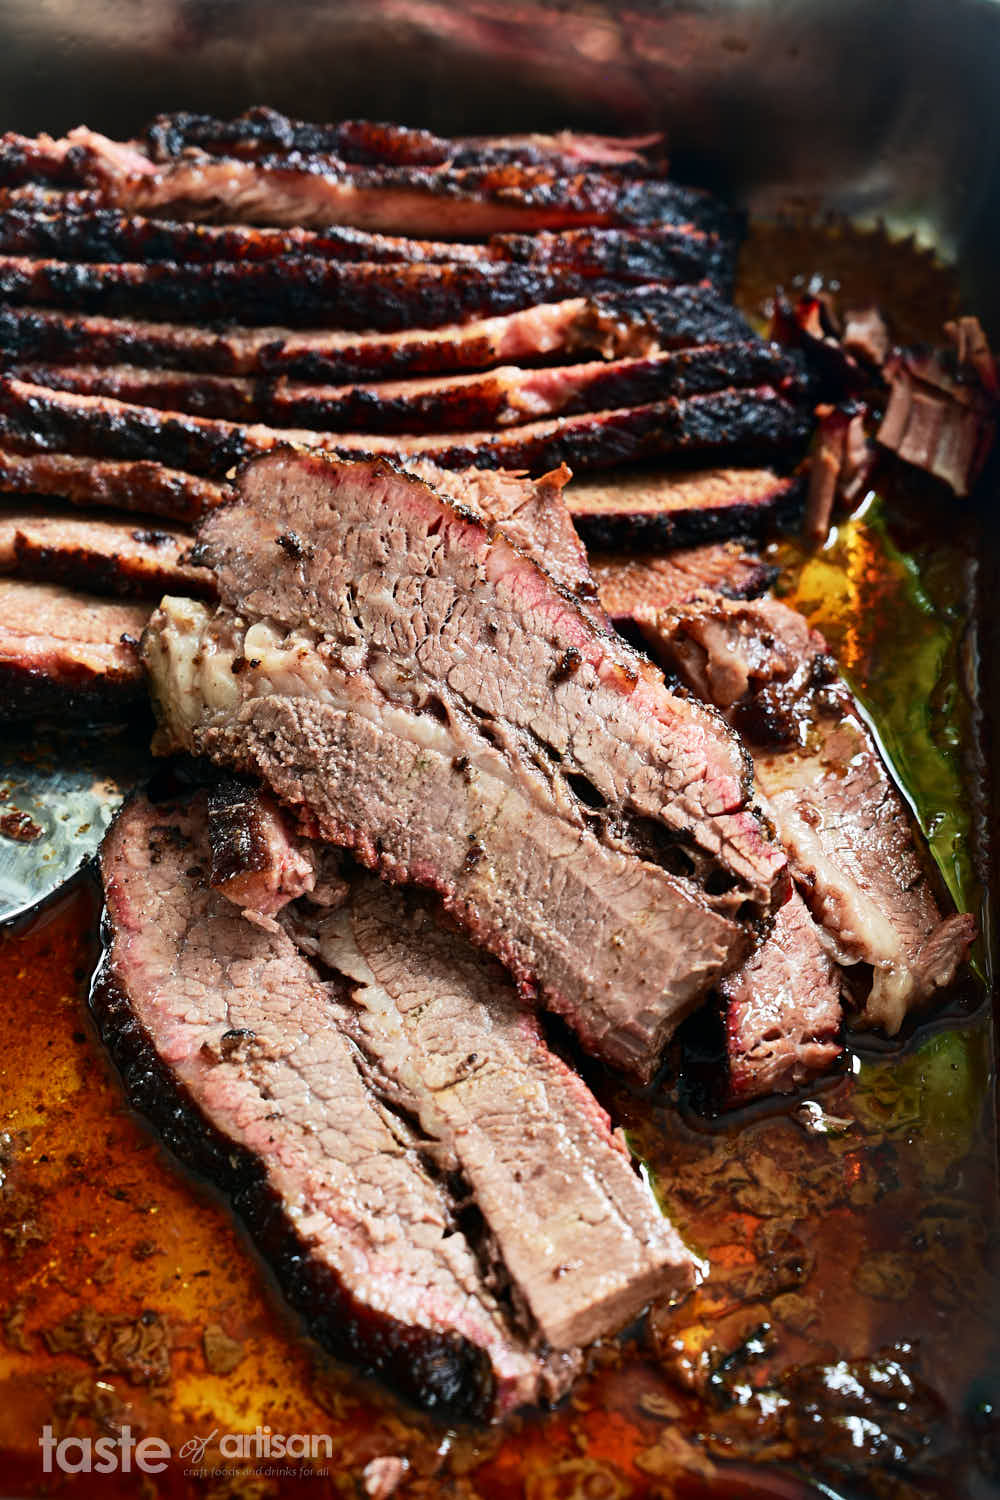 Slices of juicy smoked brisket in a pan.